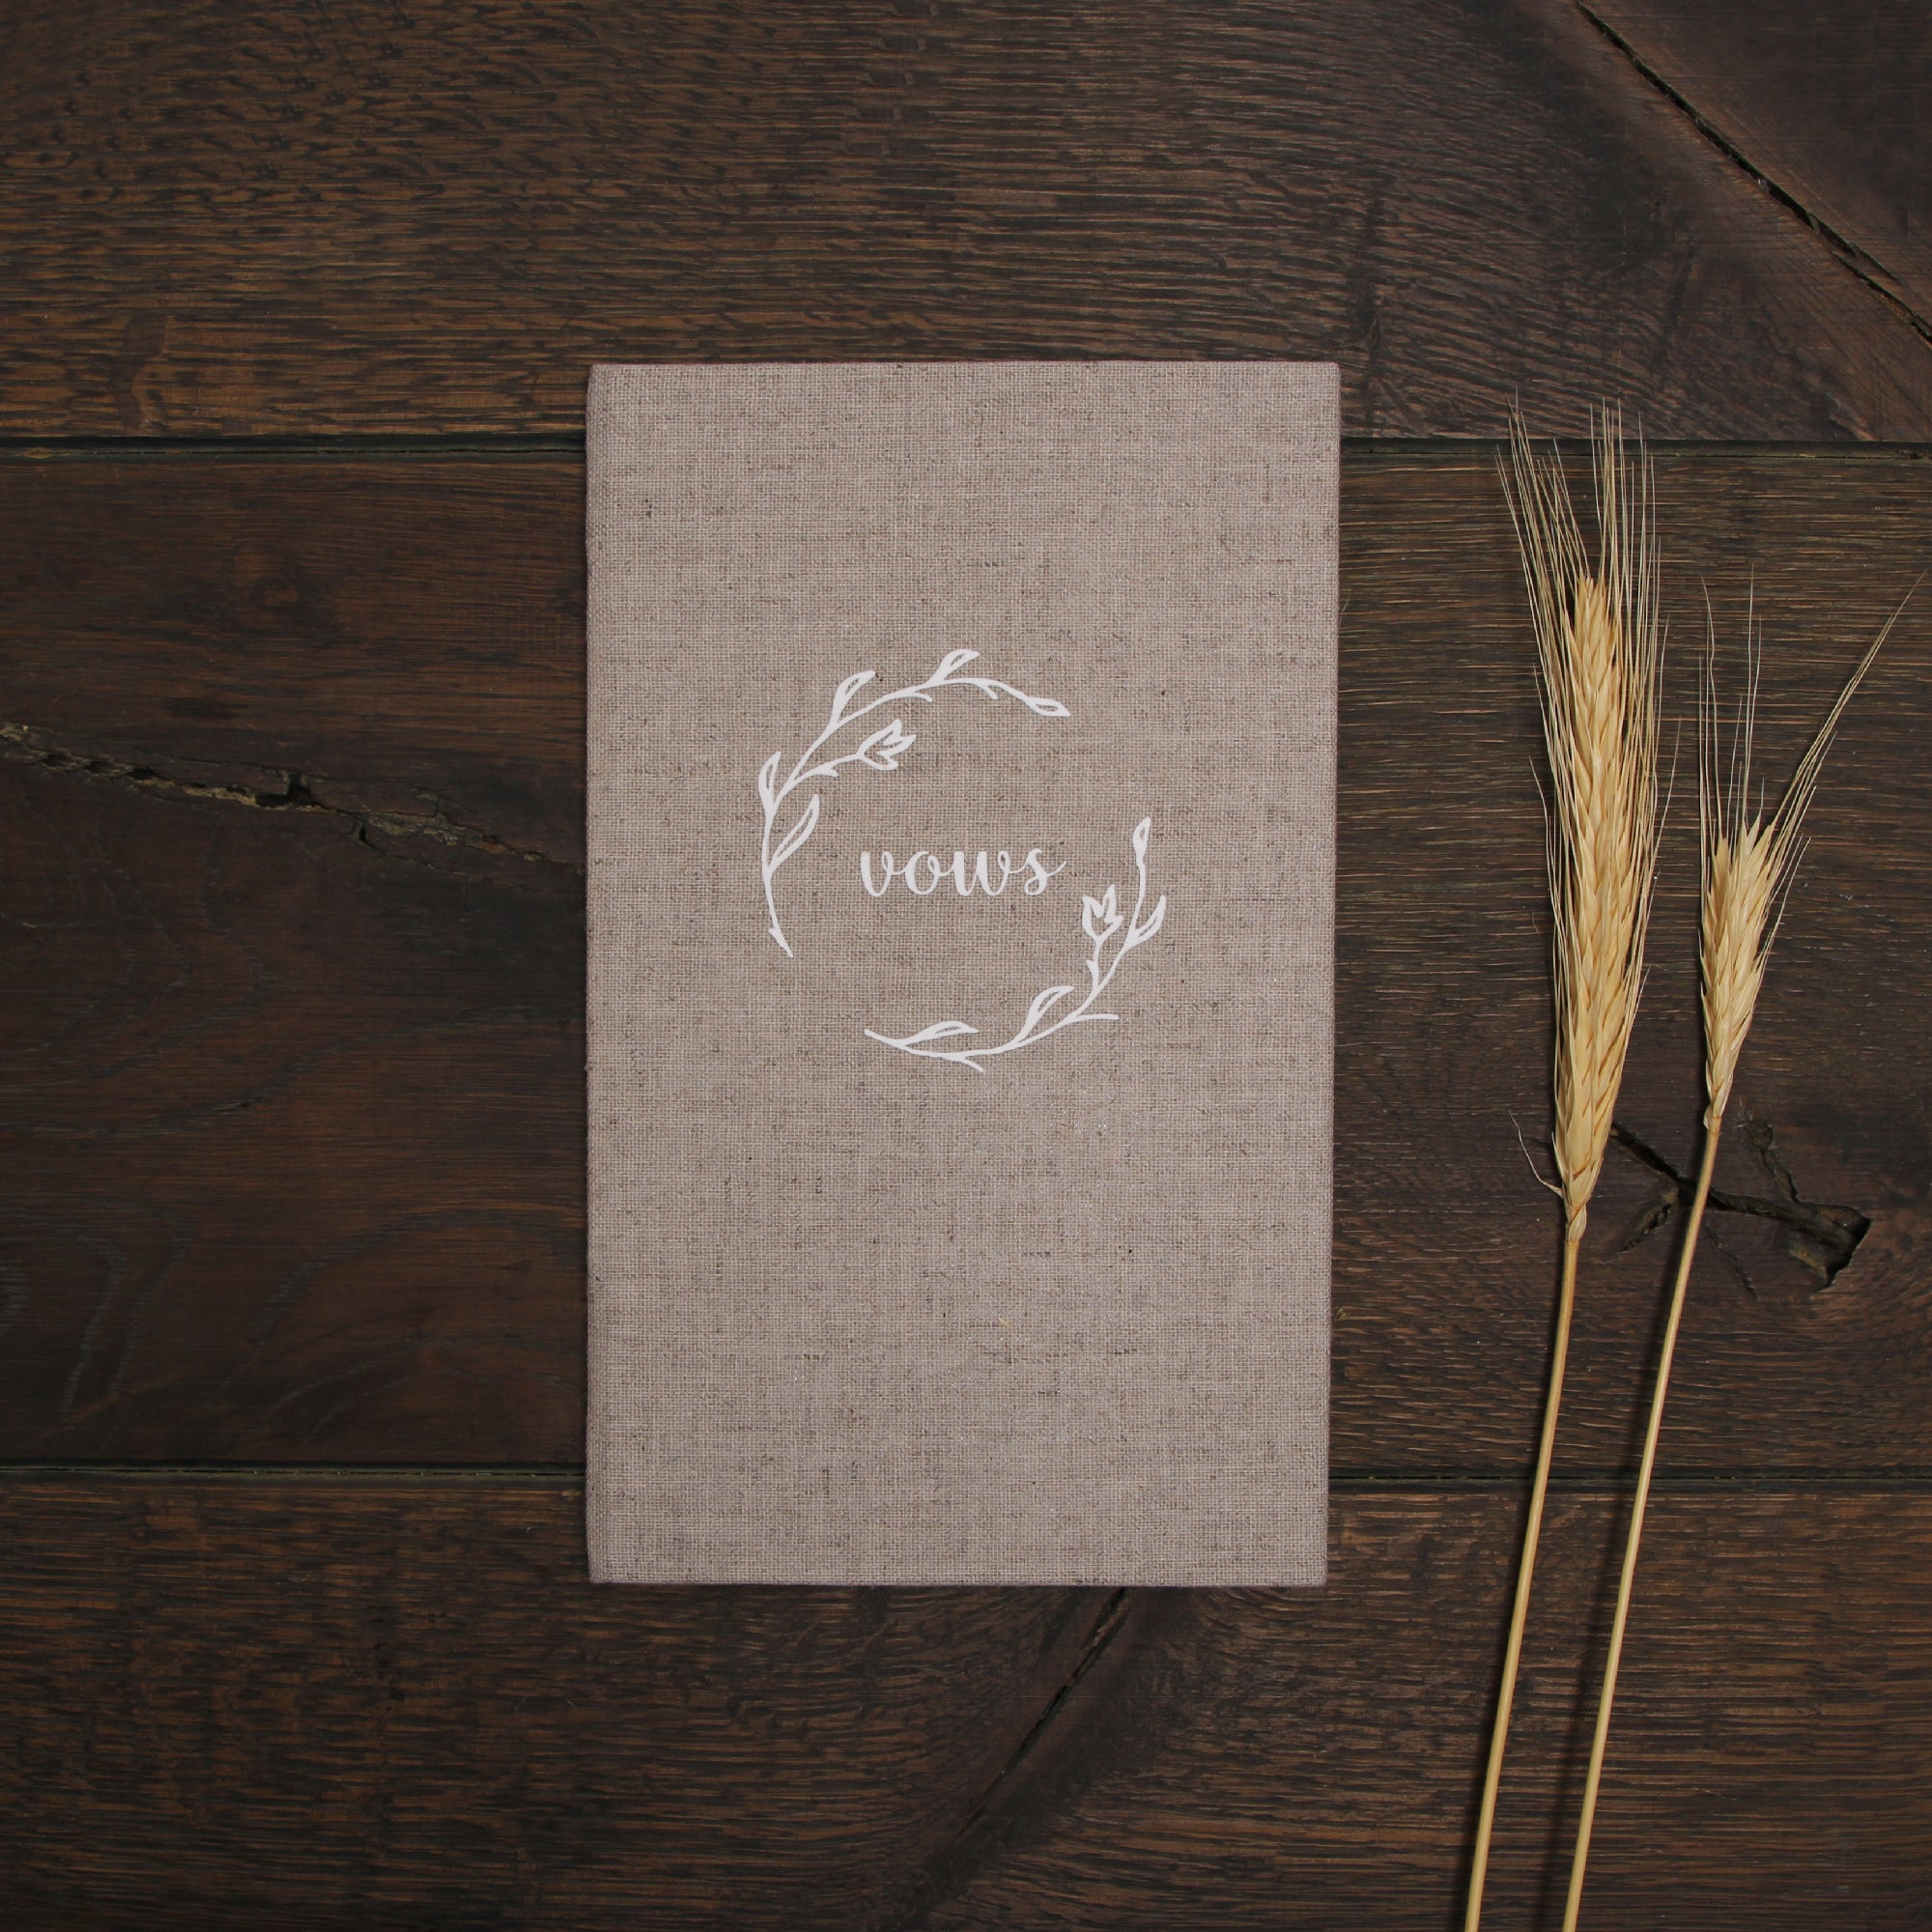 Wedd Vow Books White Velour Rustic Wreath Keepsake Calligraphy Vows Bride and Groom Ceremony - Liumy